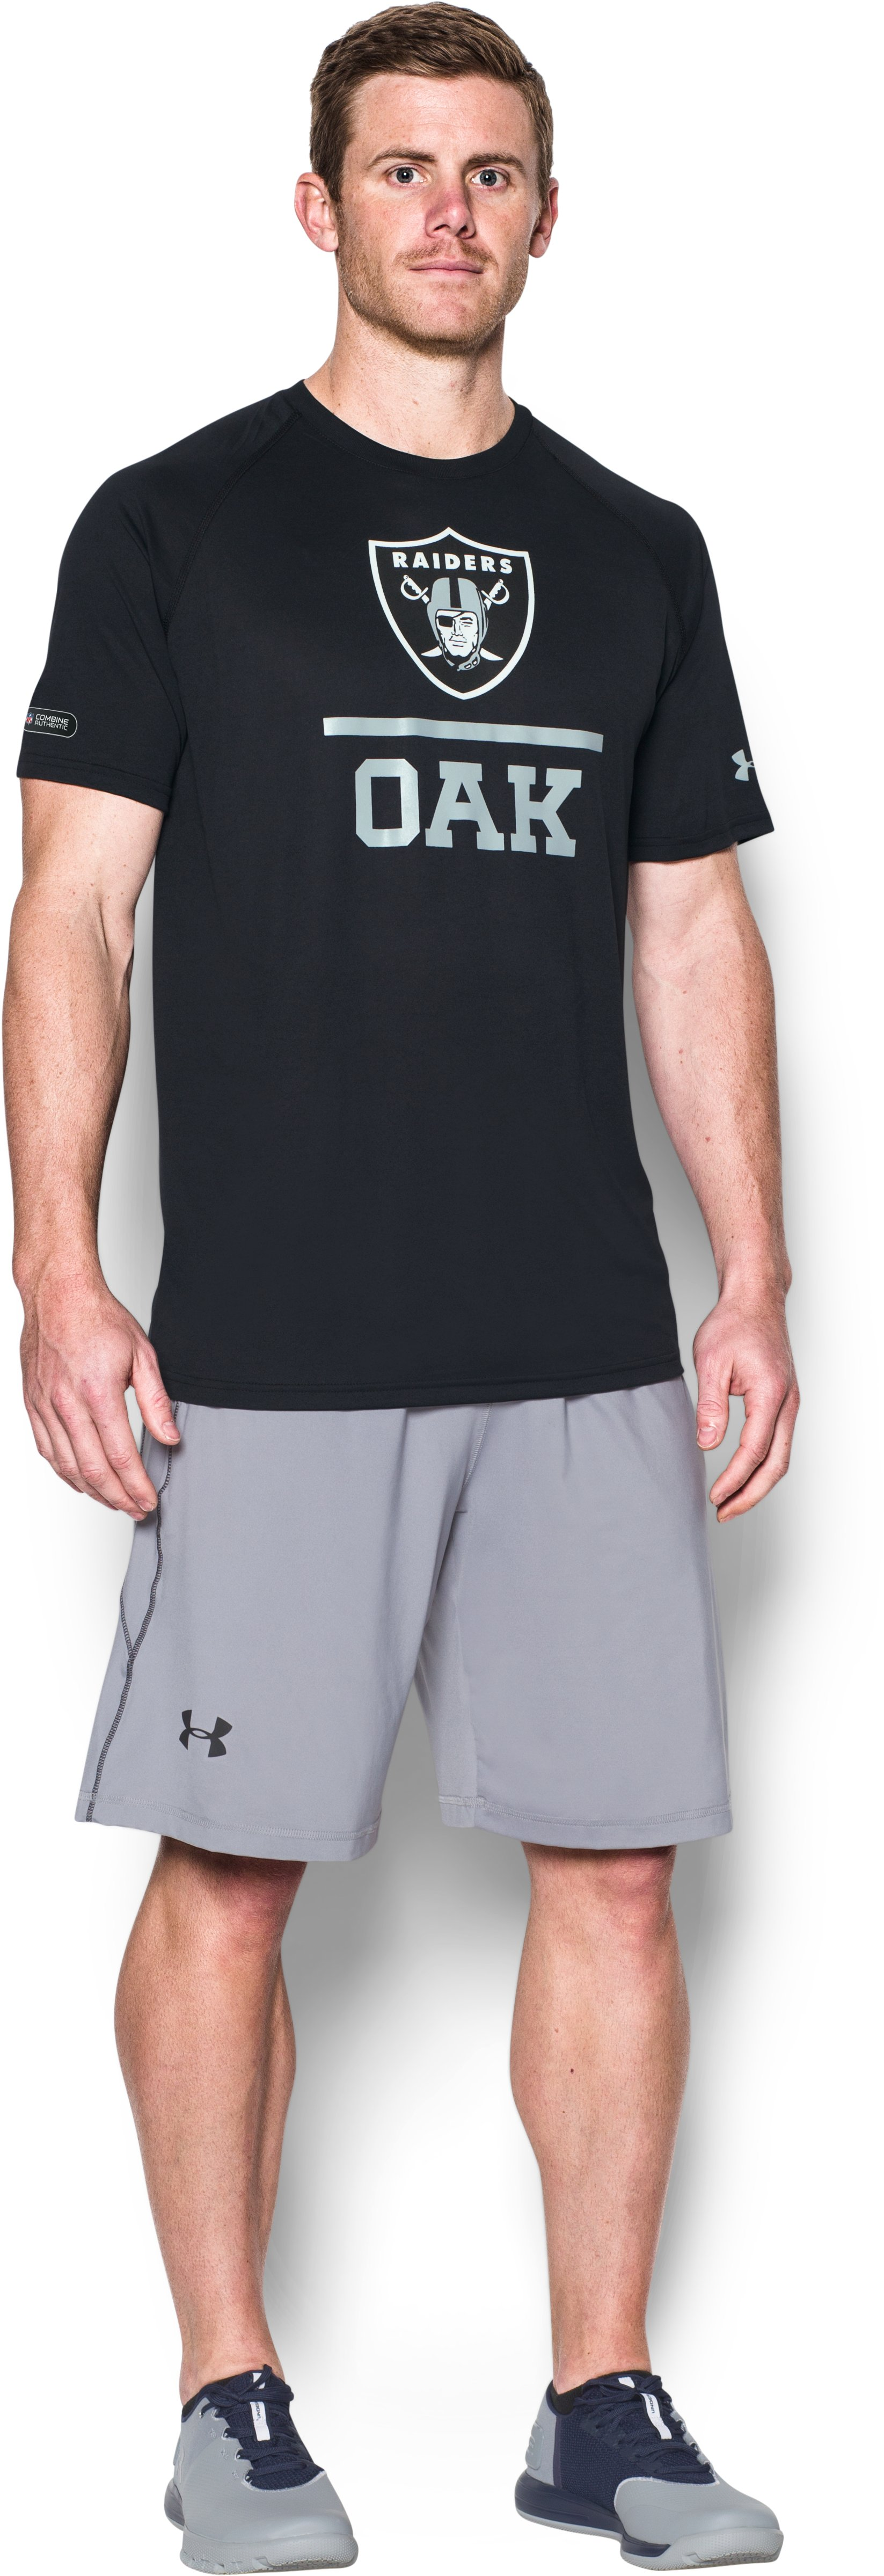 Men's Combine Authentic Lockup T-Shirt 25 Colors $26.24 - $26.99